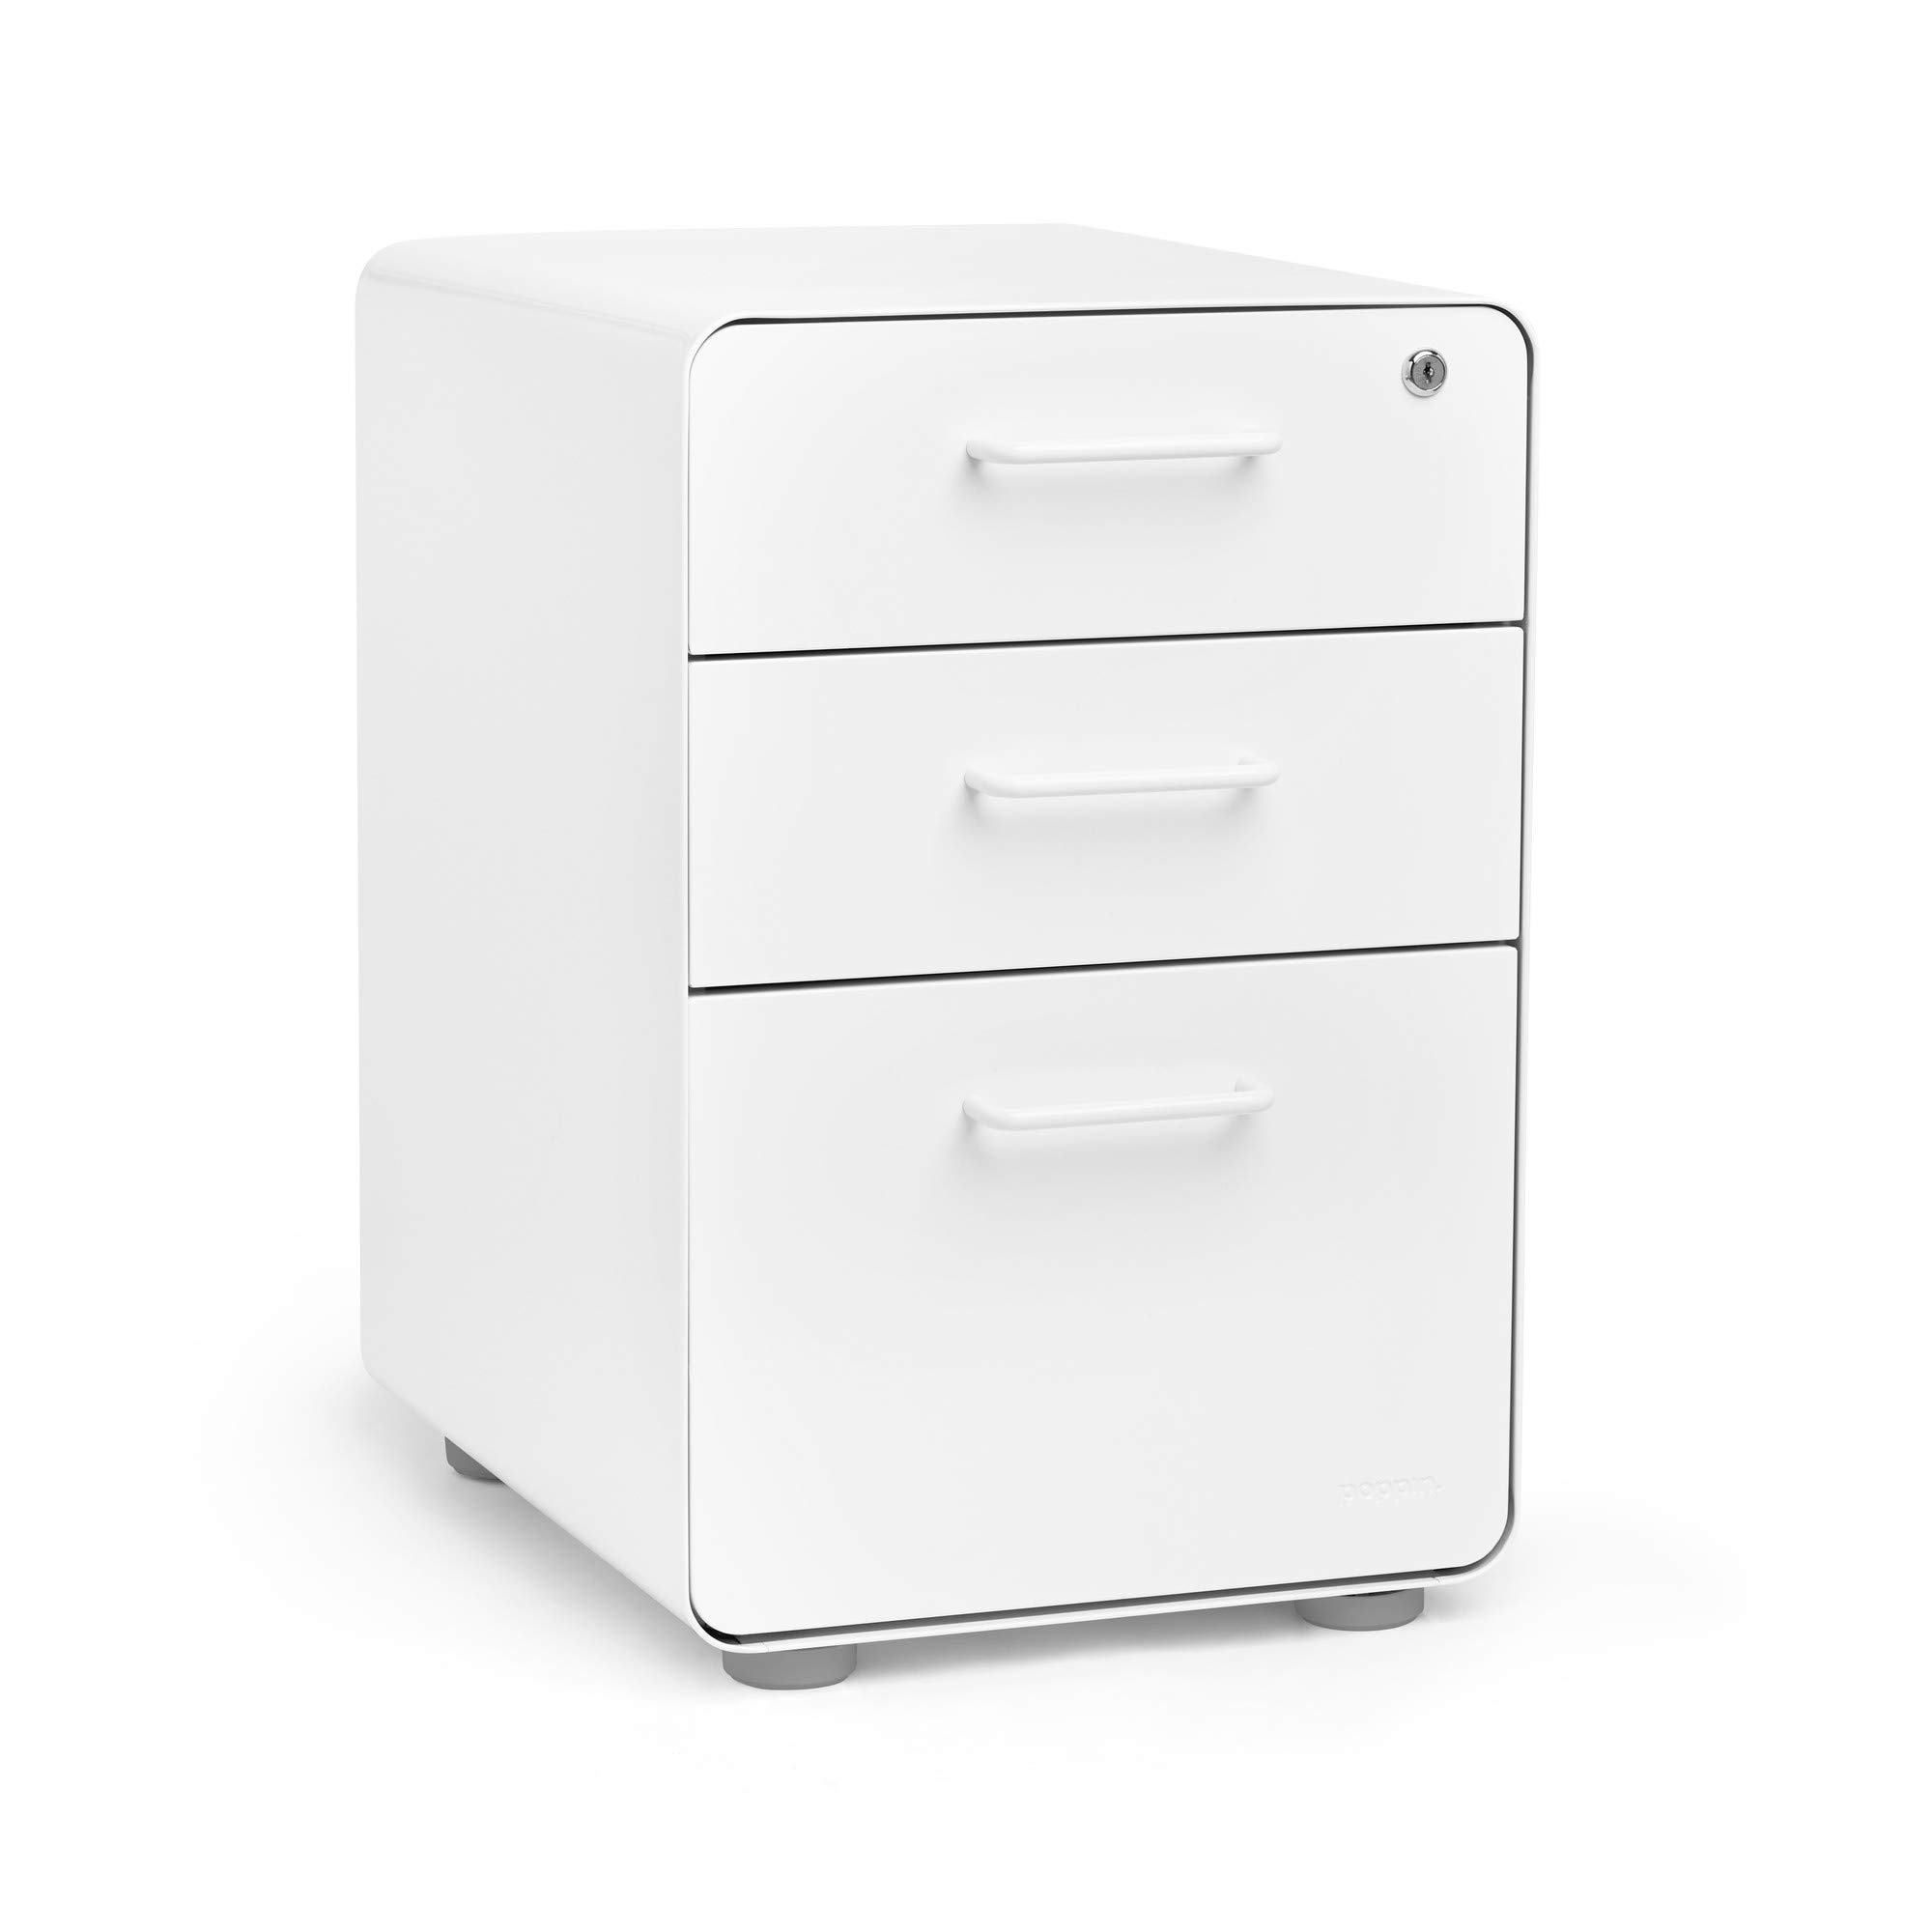 Poppin White Stow 3-Drawer File Cabinet, Available in Modern Colors, Legal/Letter, Locking by Poppin